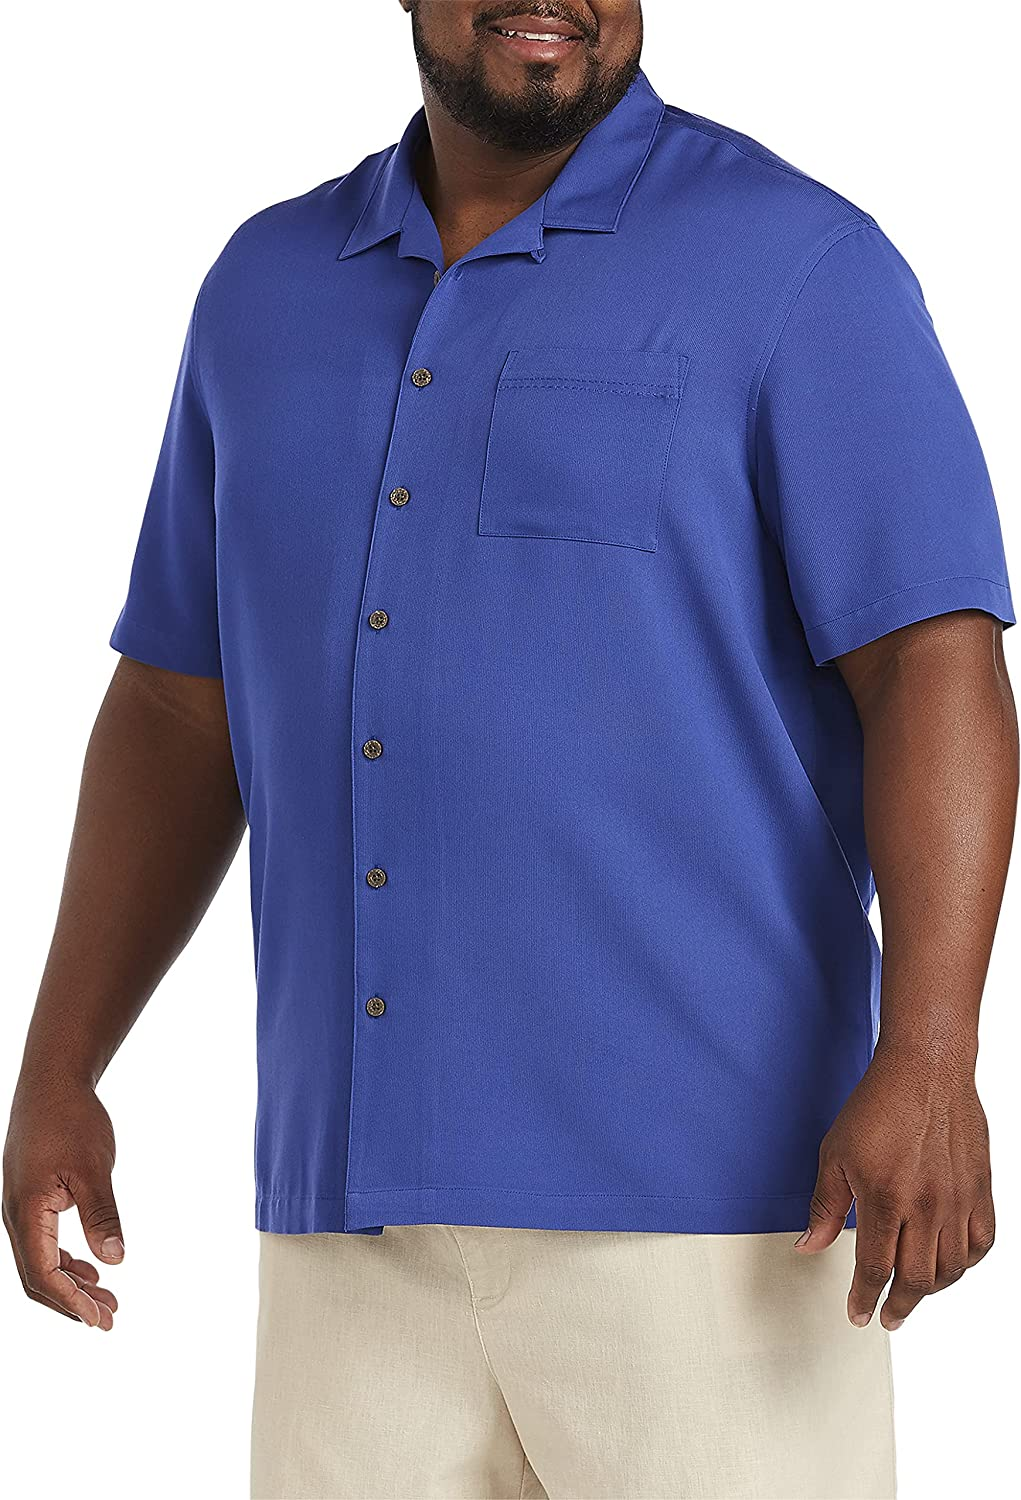 Oak Hill by DXL Big and Tall Solid Camp Shirt, Ceramic Green